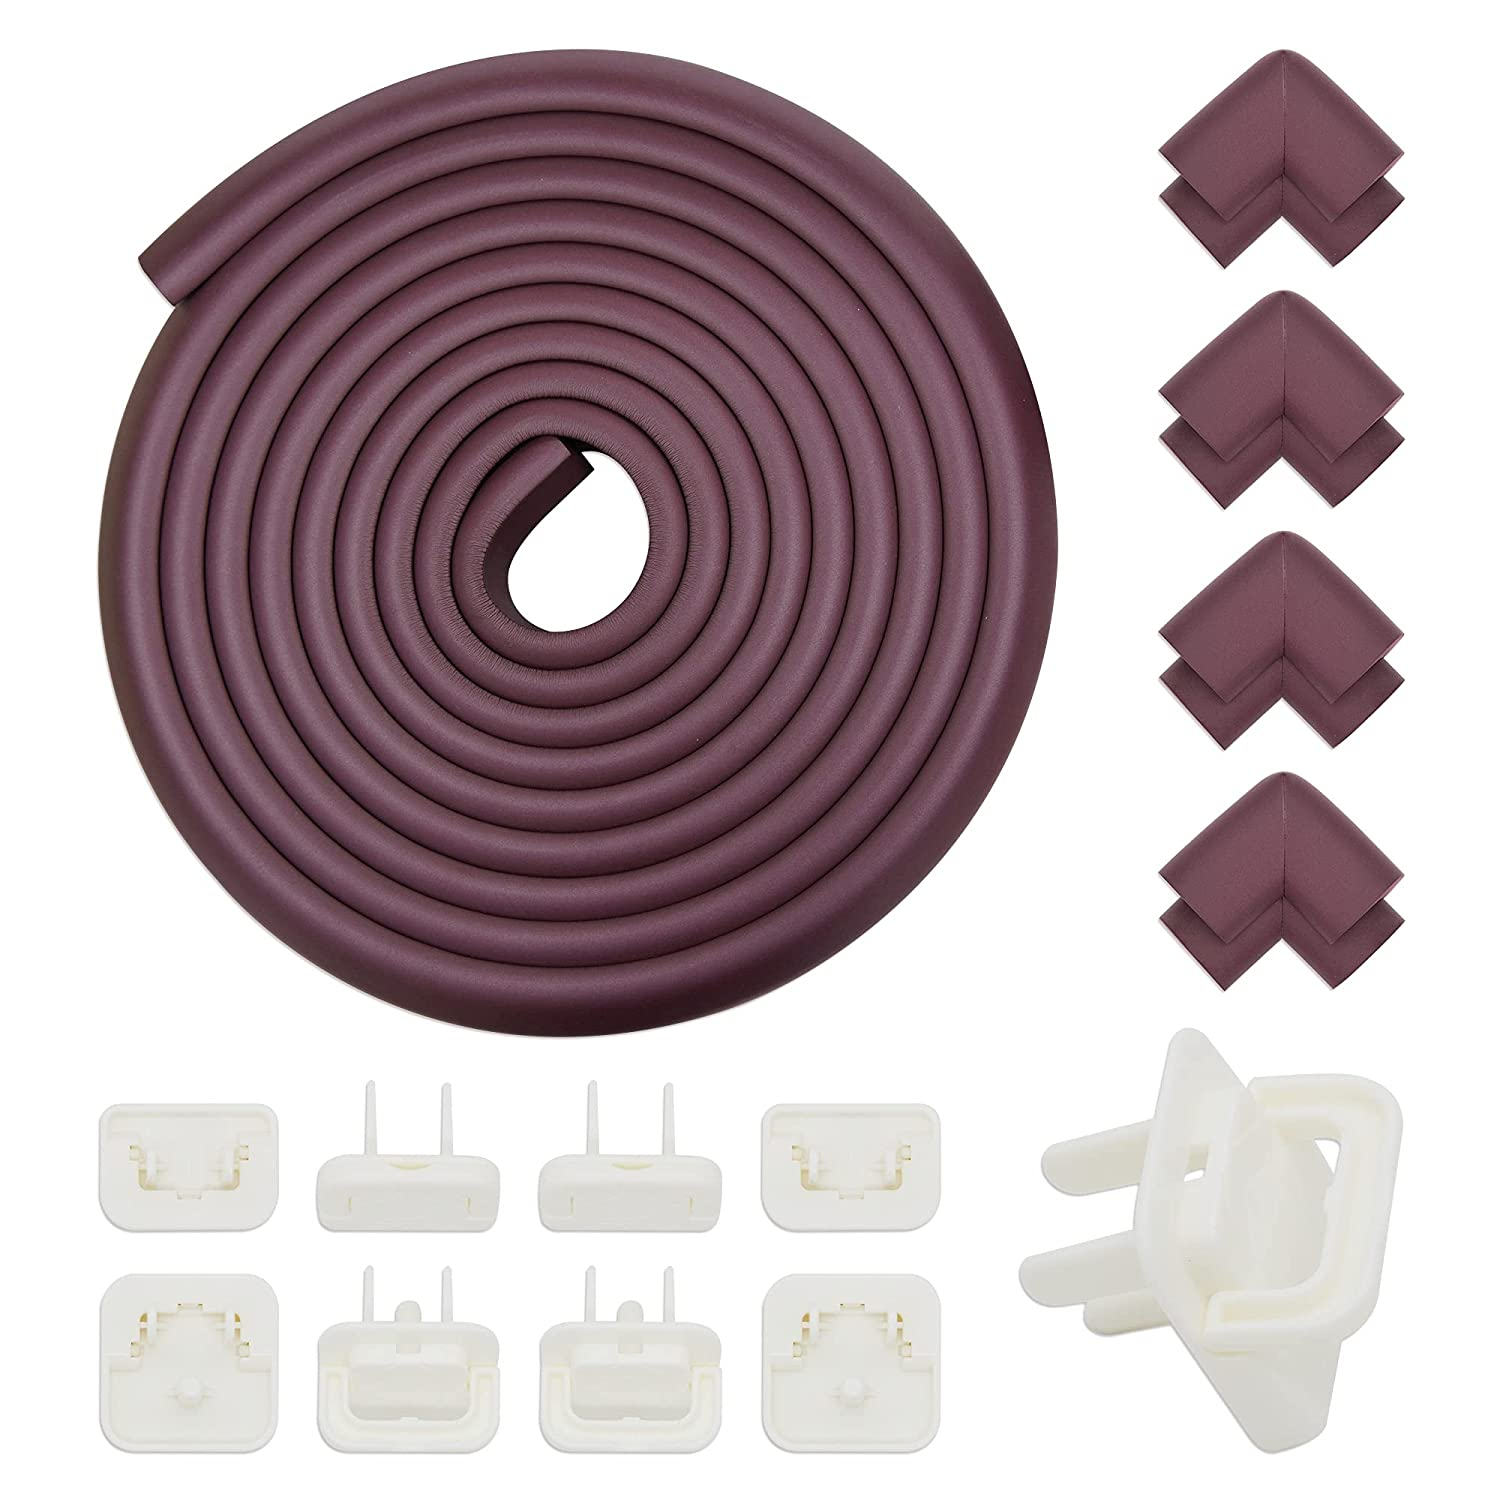 Corner Protector ,Baby Proofing Edge Corner Guards, Child Safety Furniture Bumper ,Table Protectors , Edge Corner Cushion (19.6 ft Edge + 8 Corners + 8 Outlet Plug Covers) Heavy-Duty